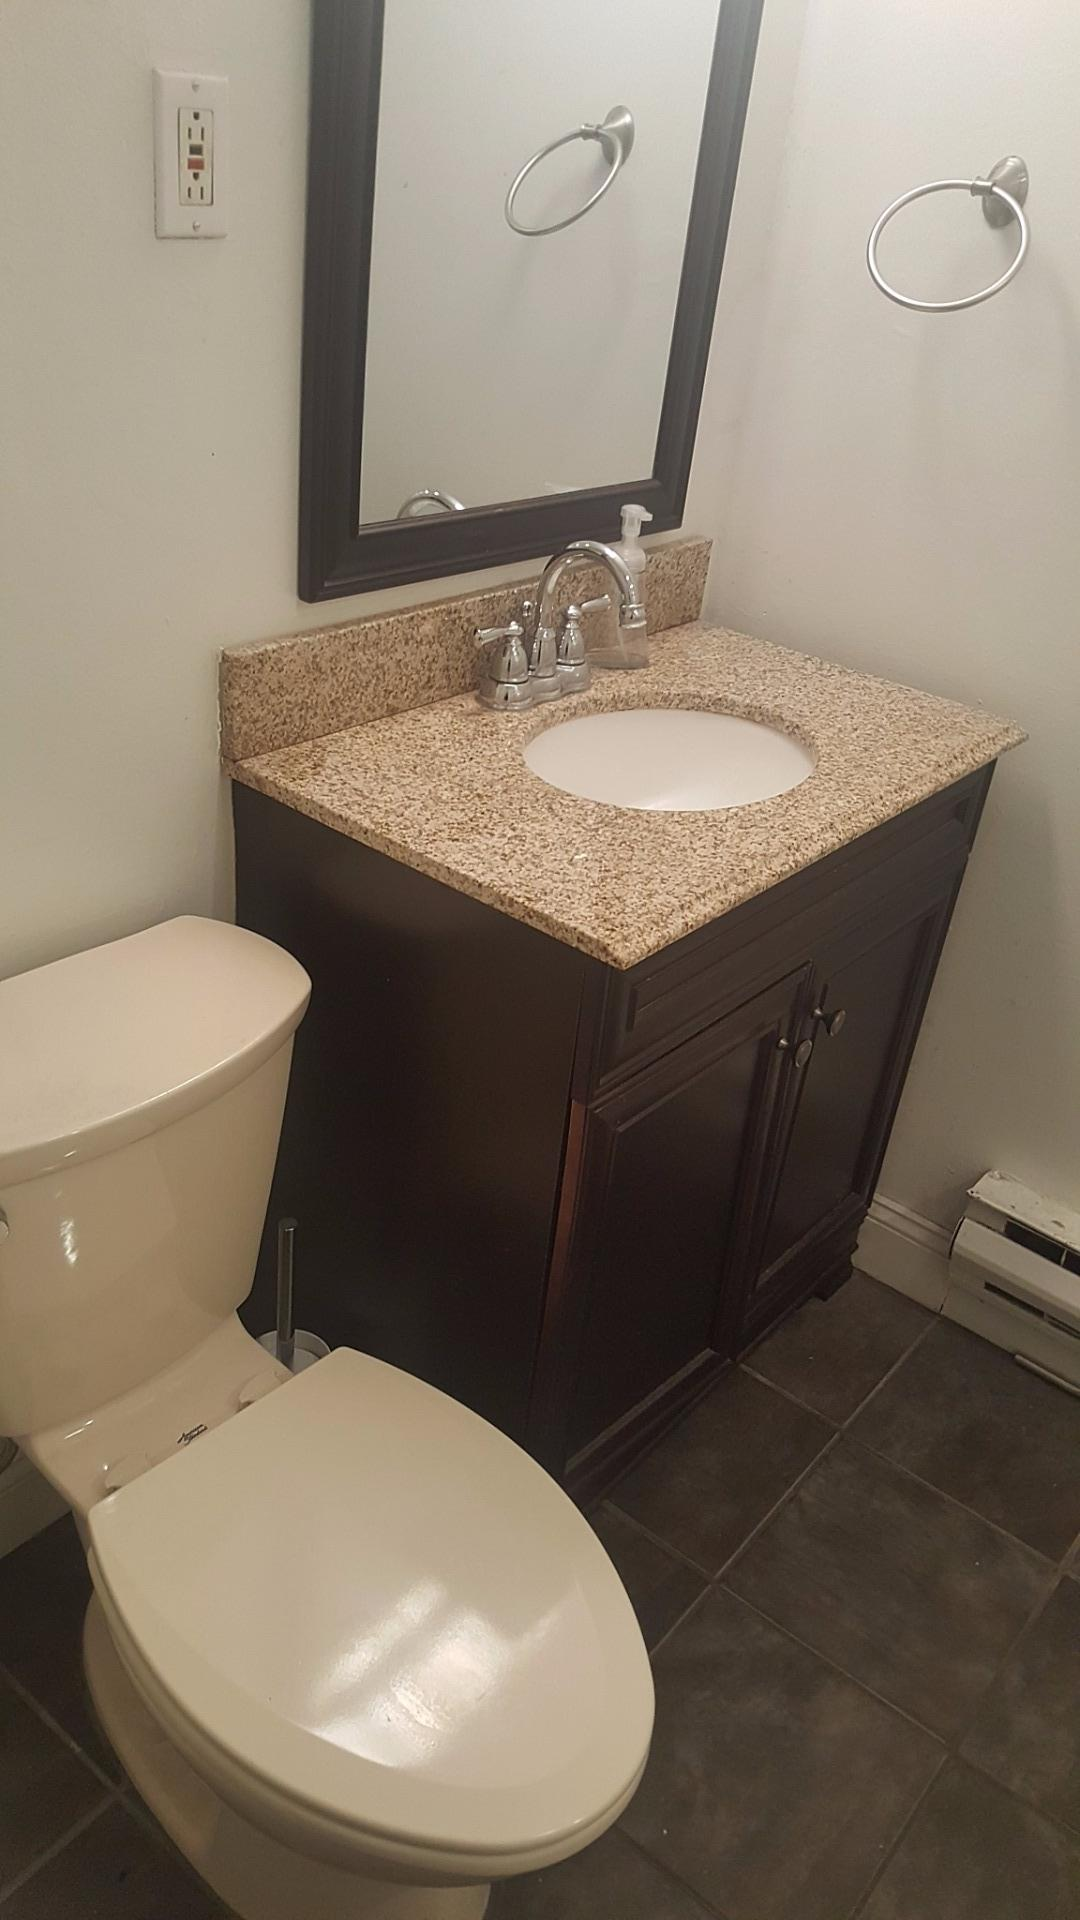 9/1 EXCEPTIONAL JP 3BR RIGHT IN FRONT OF ORANGE LINE! NEW KIT!